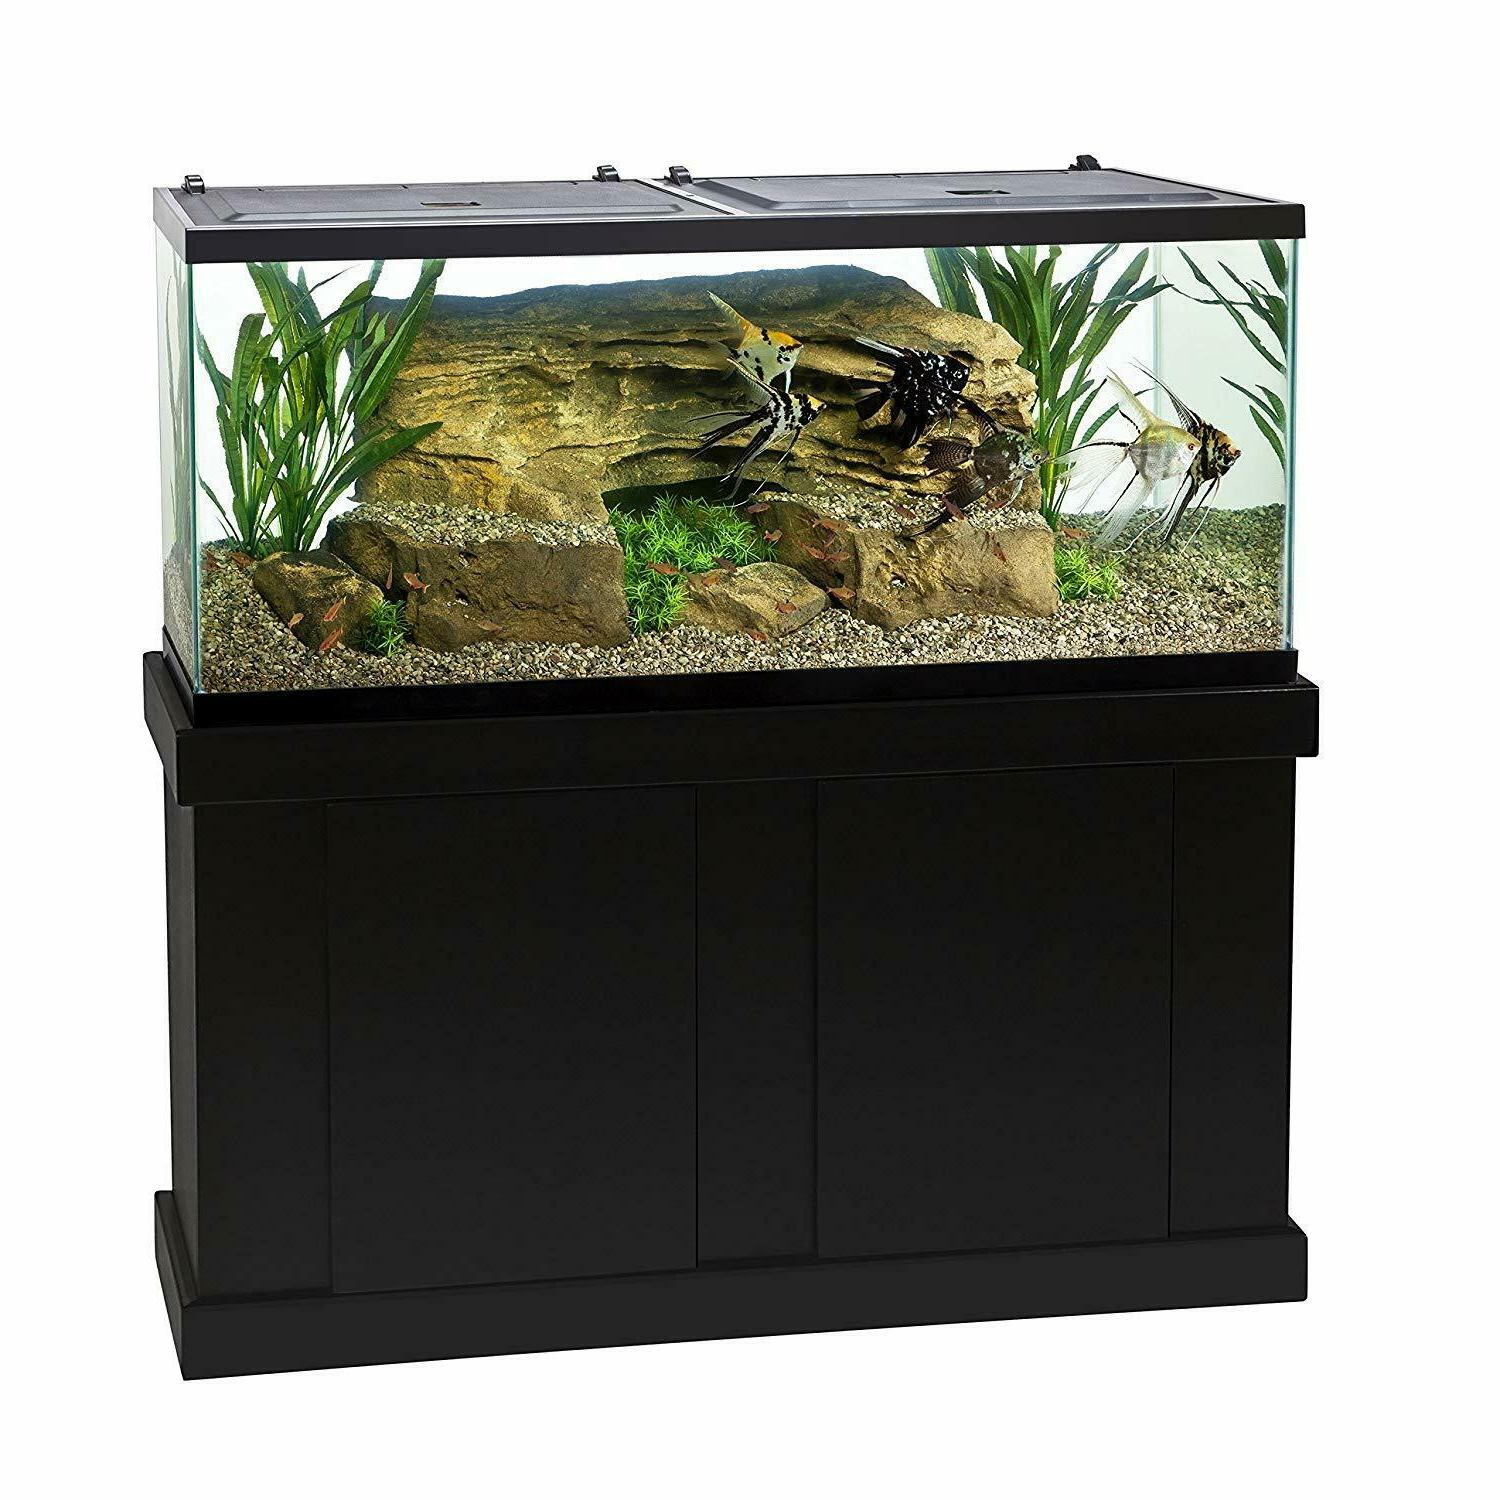 Tetra 55-Gallon with Net, Heater/Conditioner